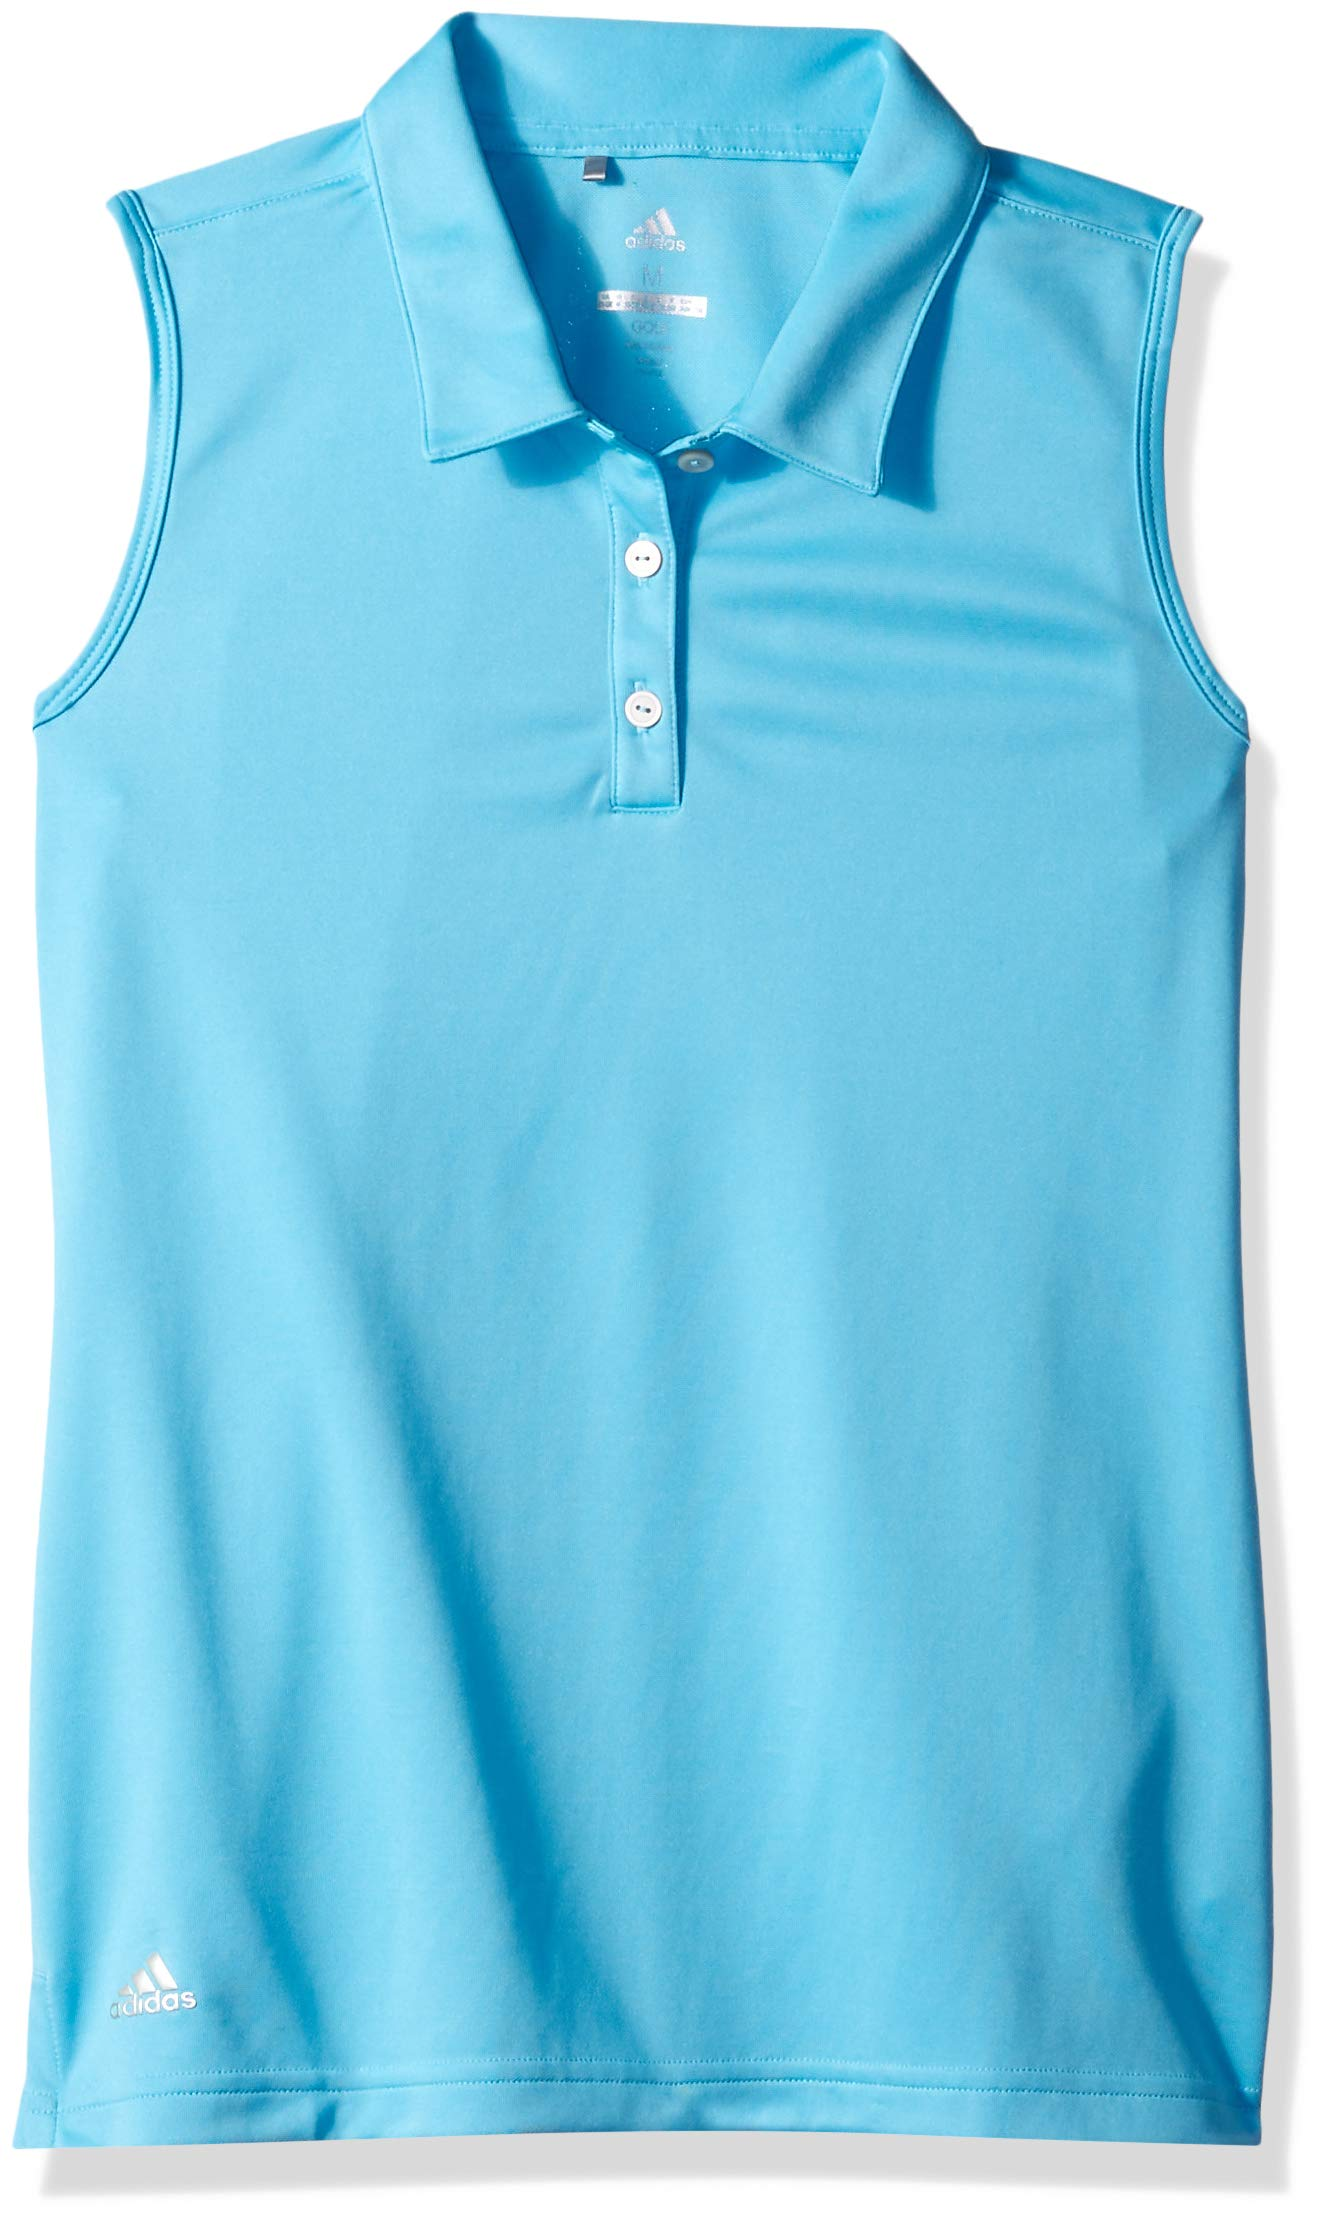 adidas Golf Tournament Sleeveless Polo, Bright Cyan, Large by adidas